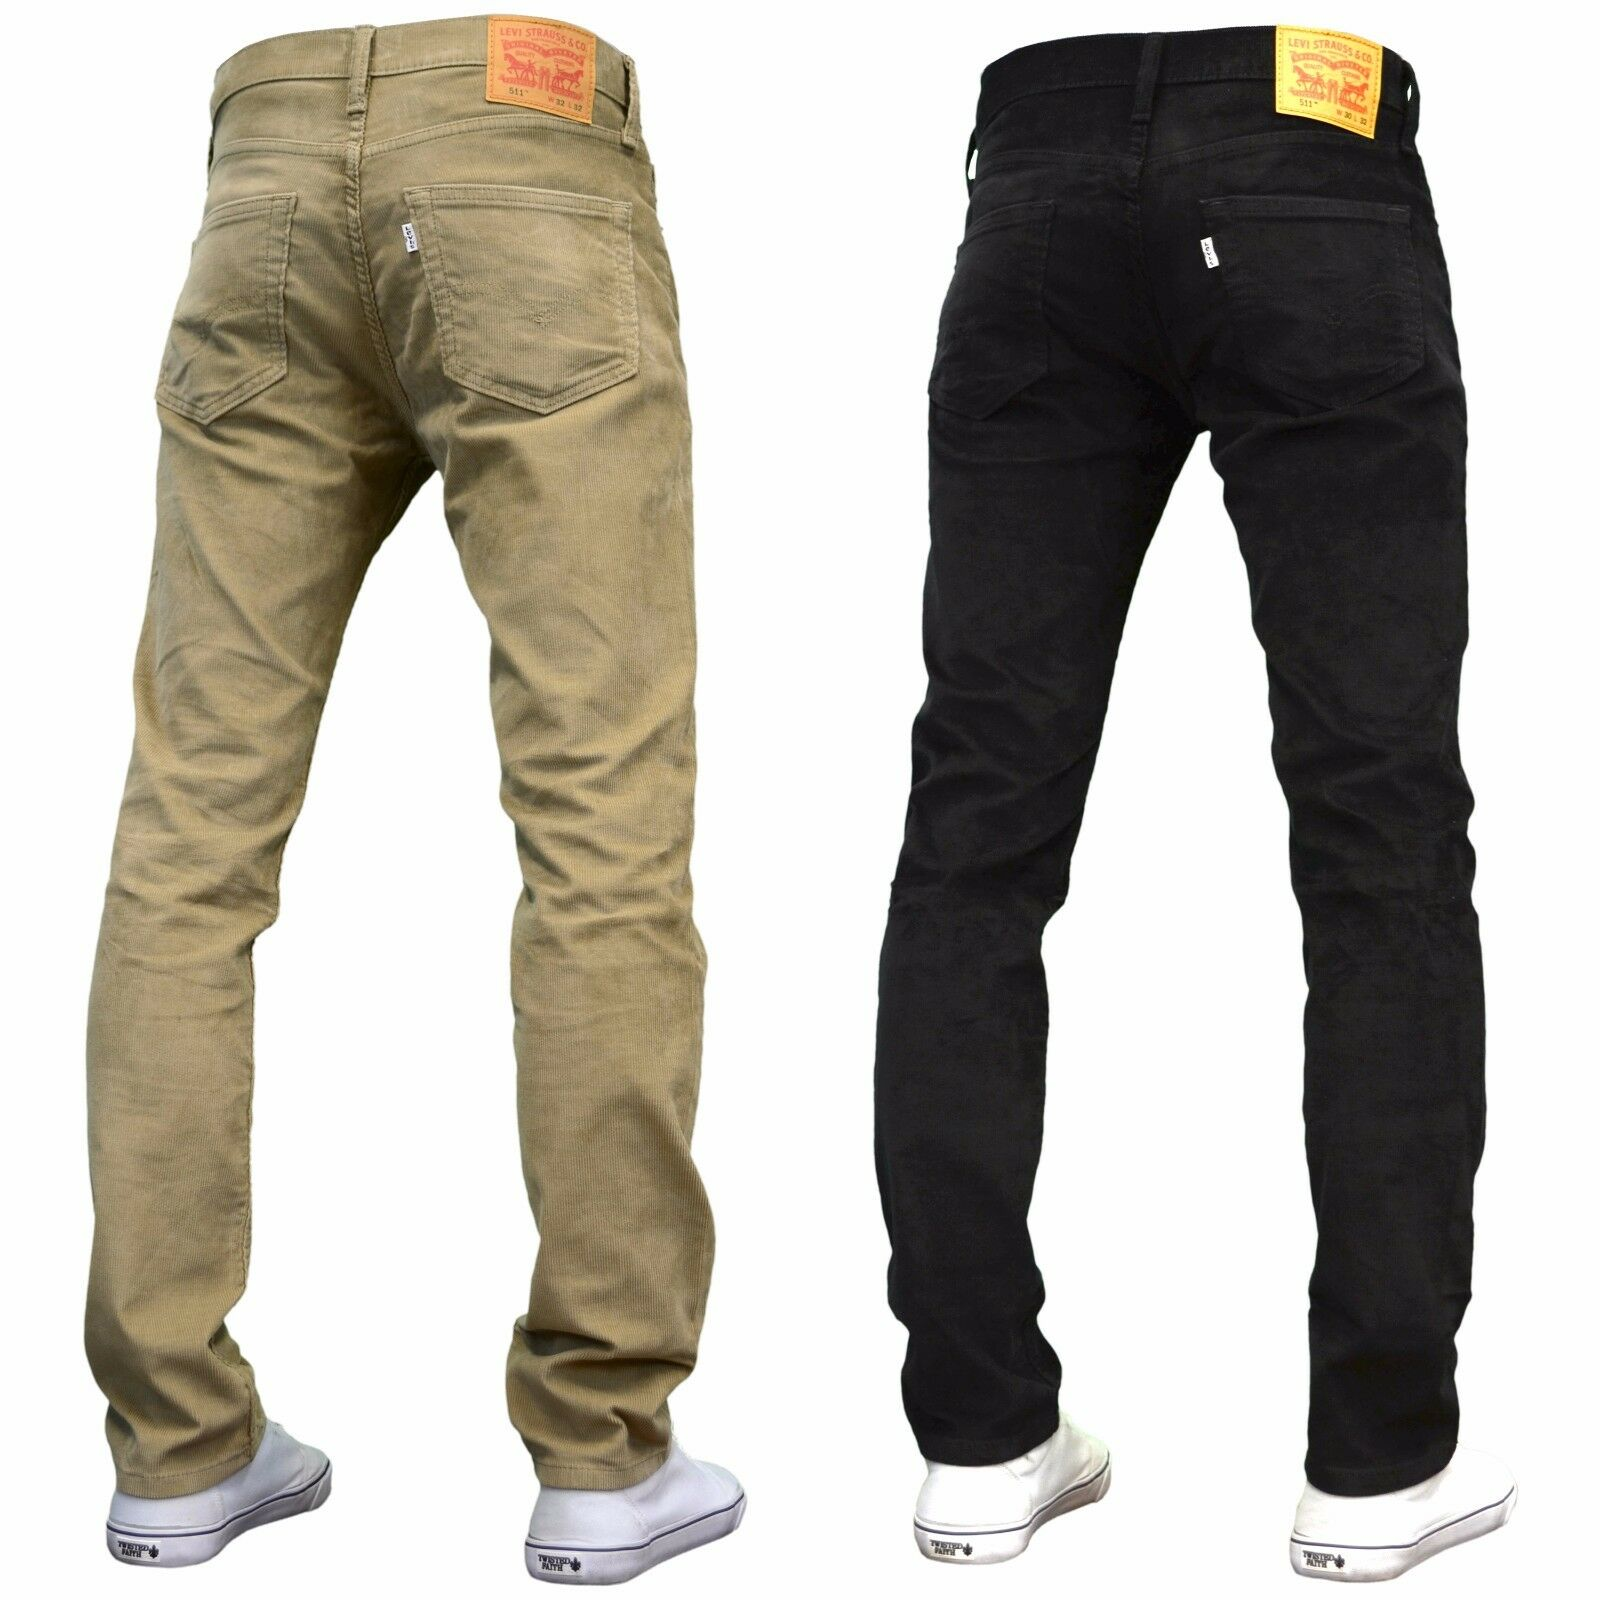 levi 39 s 511 men 39 s designer slim fit stretch corduroy jeans black beige bnwt ebay. Black Bedroom Furniture Sets. Home Design Ideas